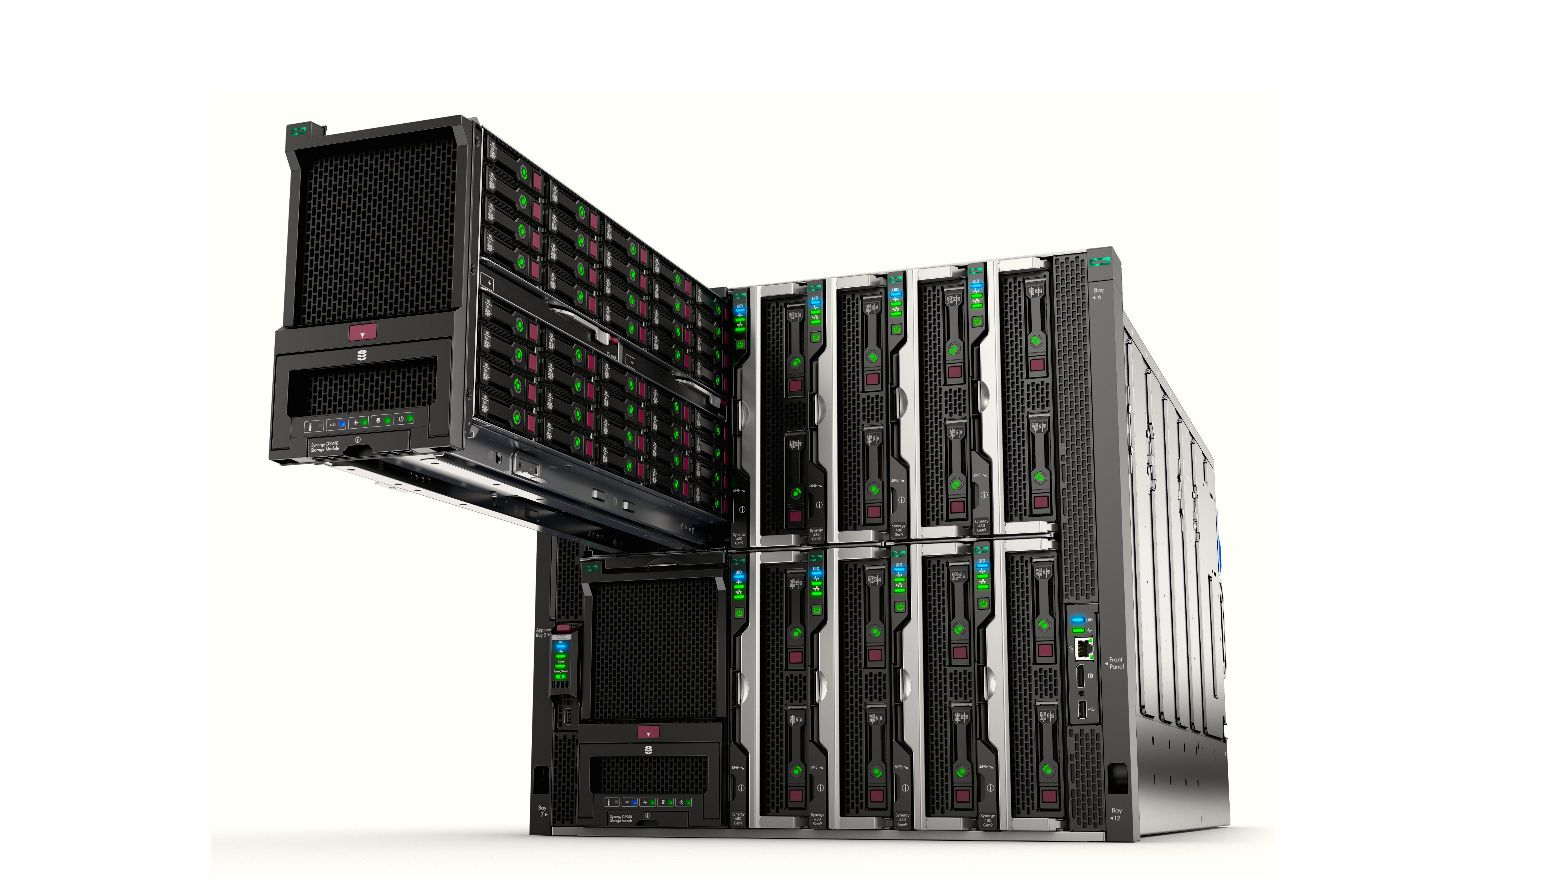 HPE Synergy hardware